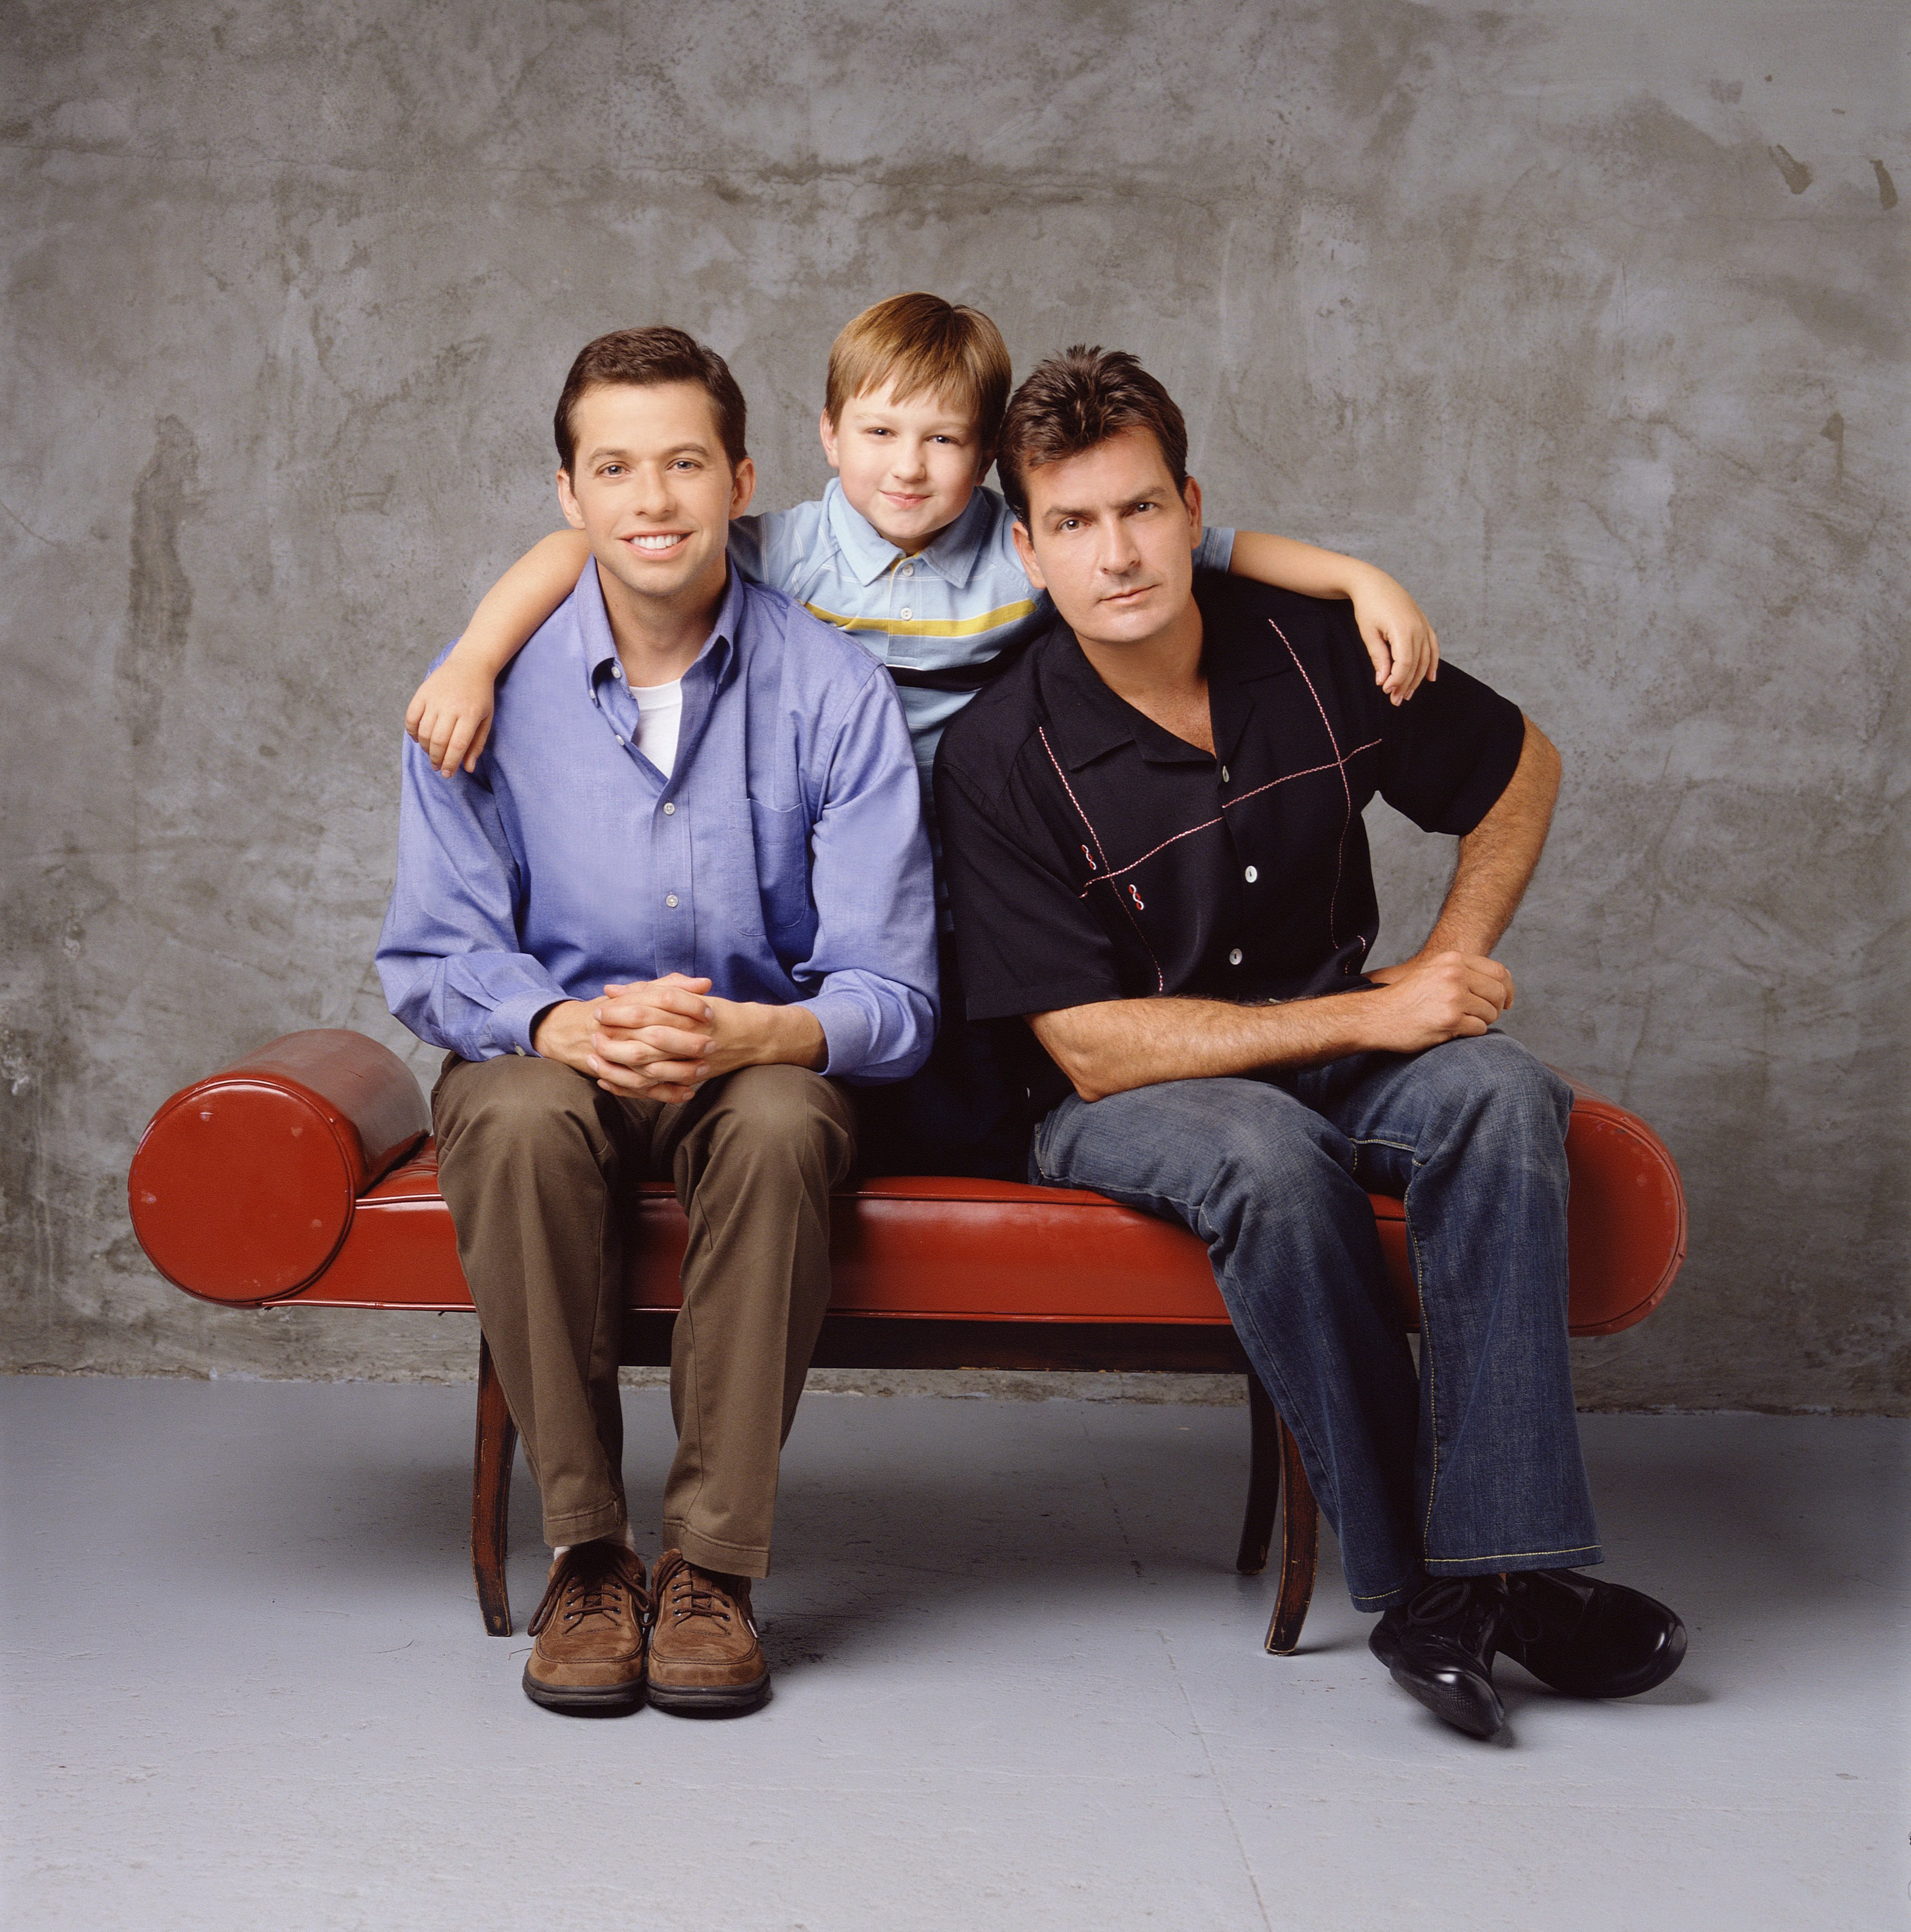 Promotional portrait of, from left, American actors Jon Cryer, Angus T. Jones, and Charlie Sheen for the television comedy 'Two and a Half Men,' Los Angeles, California, 2003.   Source: Getty Images